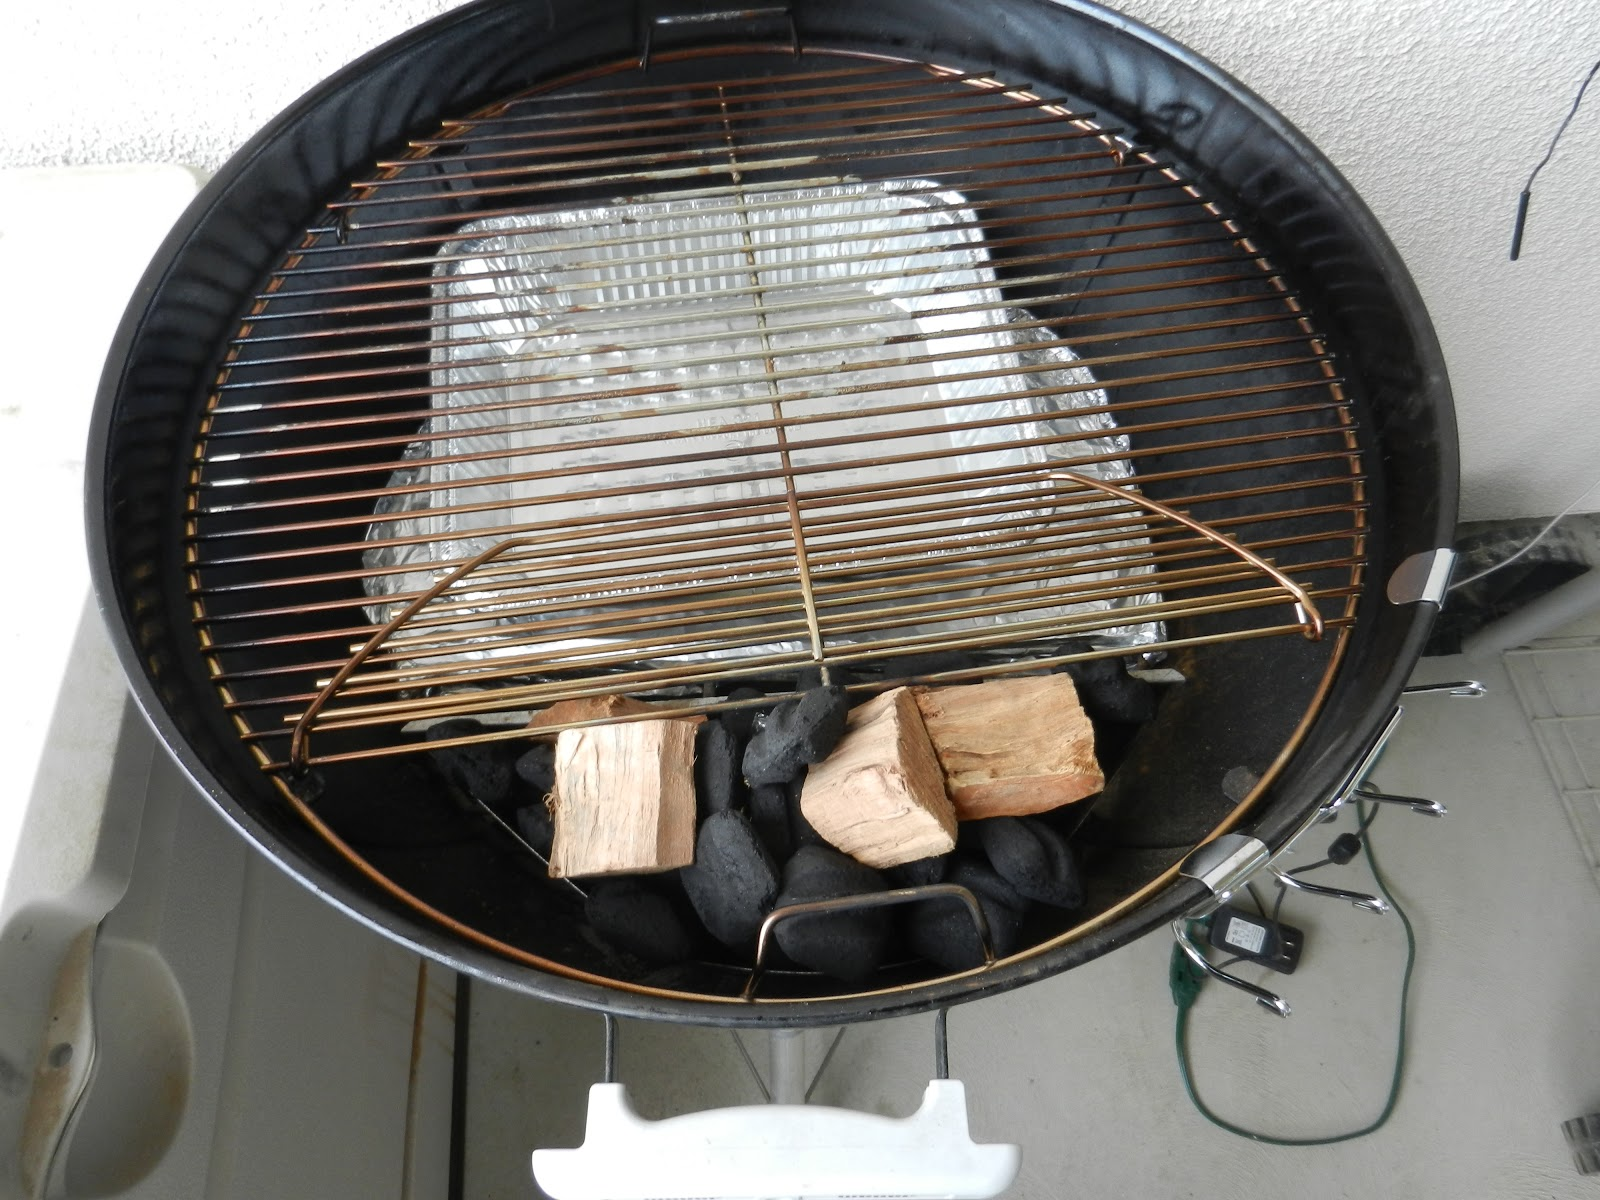 how to get charcoal lit without lighter fluid